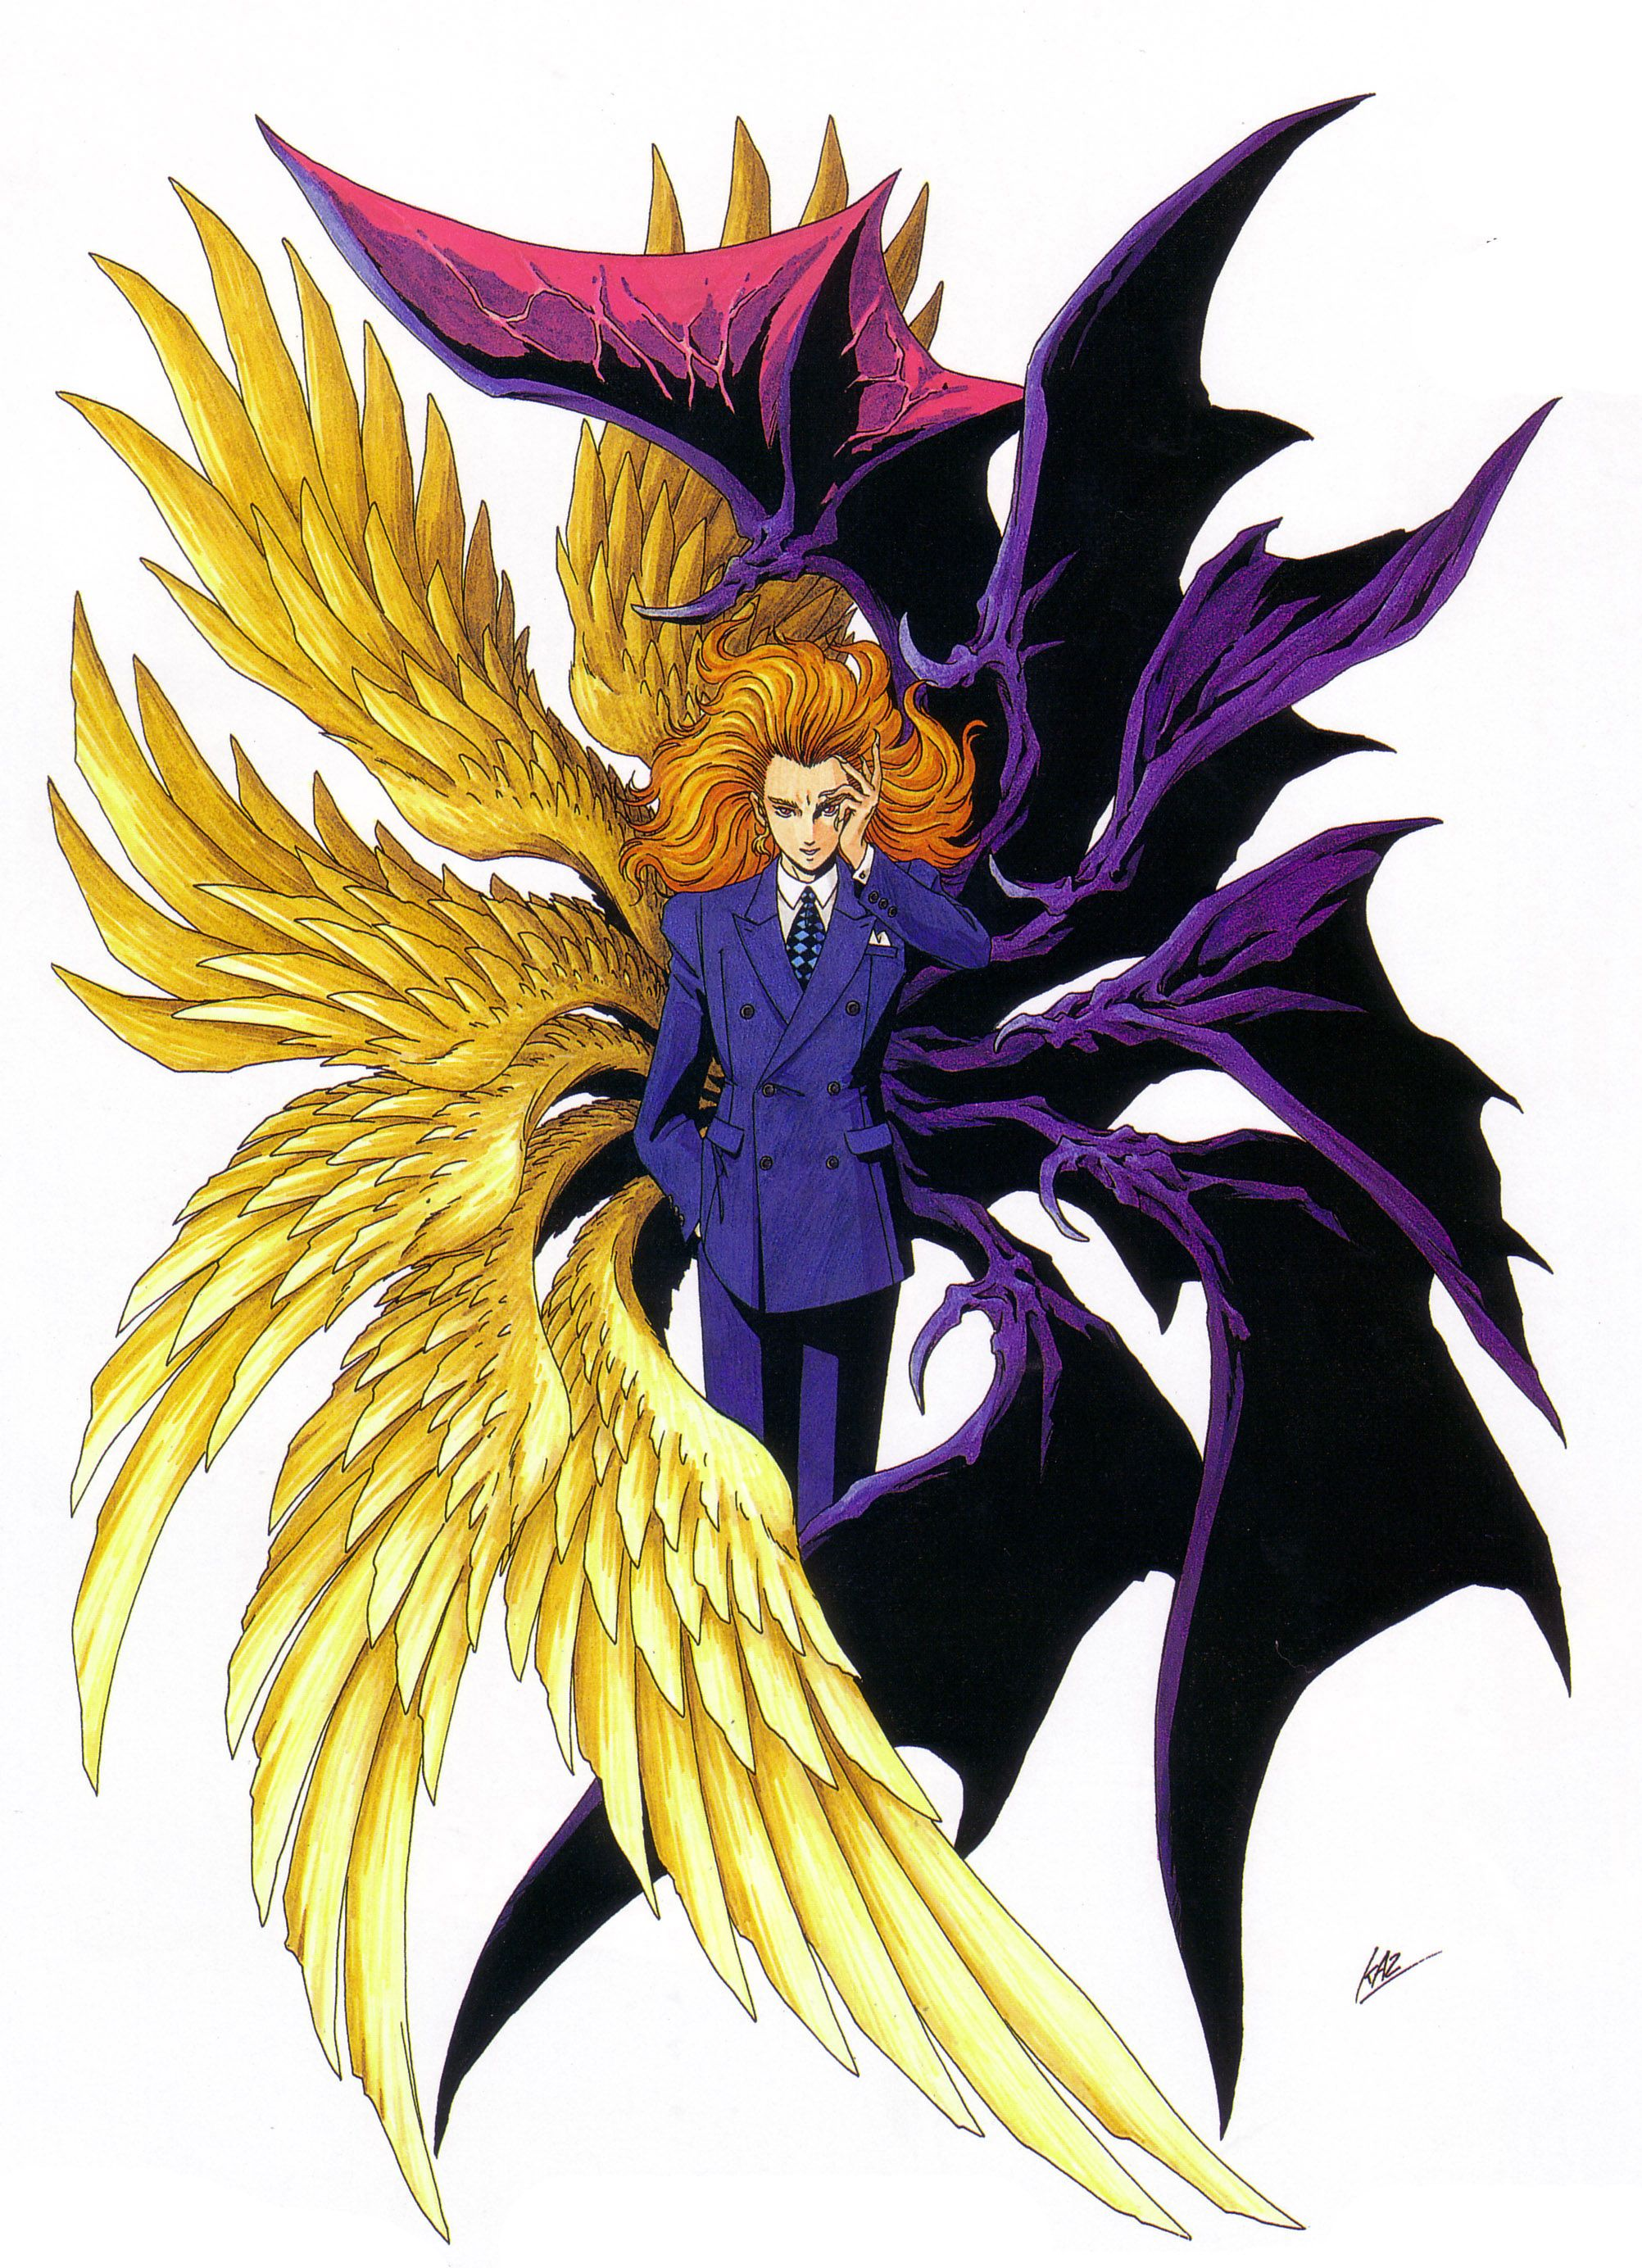 Artwork of Lucifer (or Louis Cyphre) with 12 wings (6